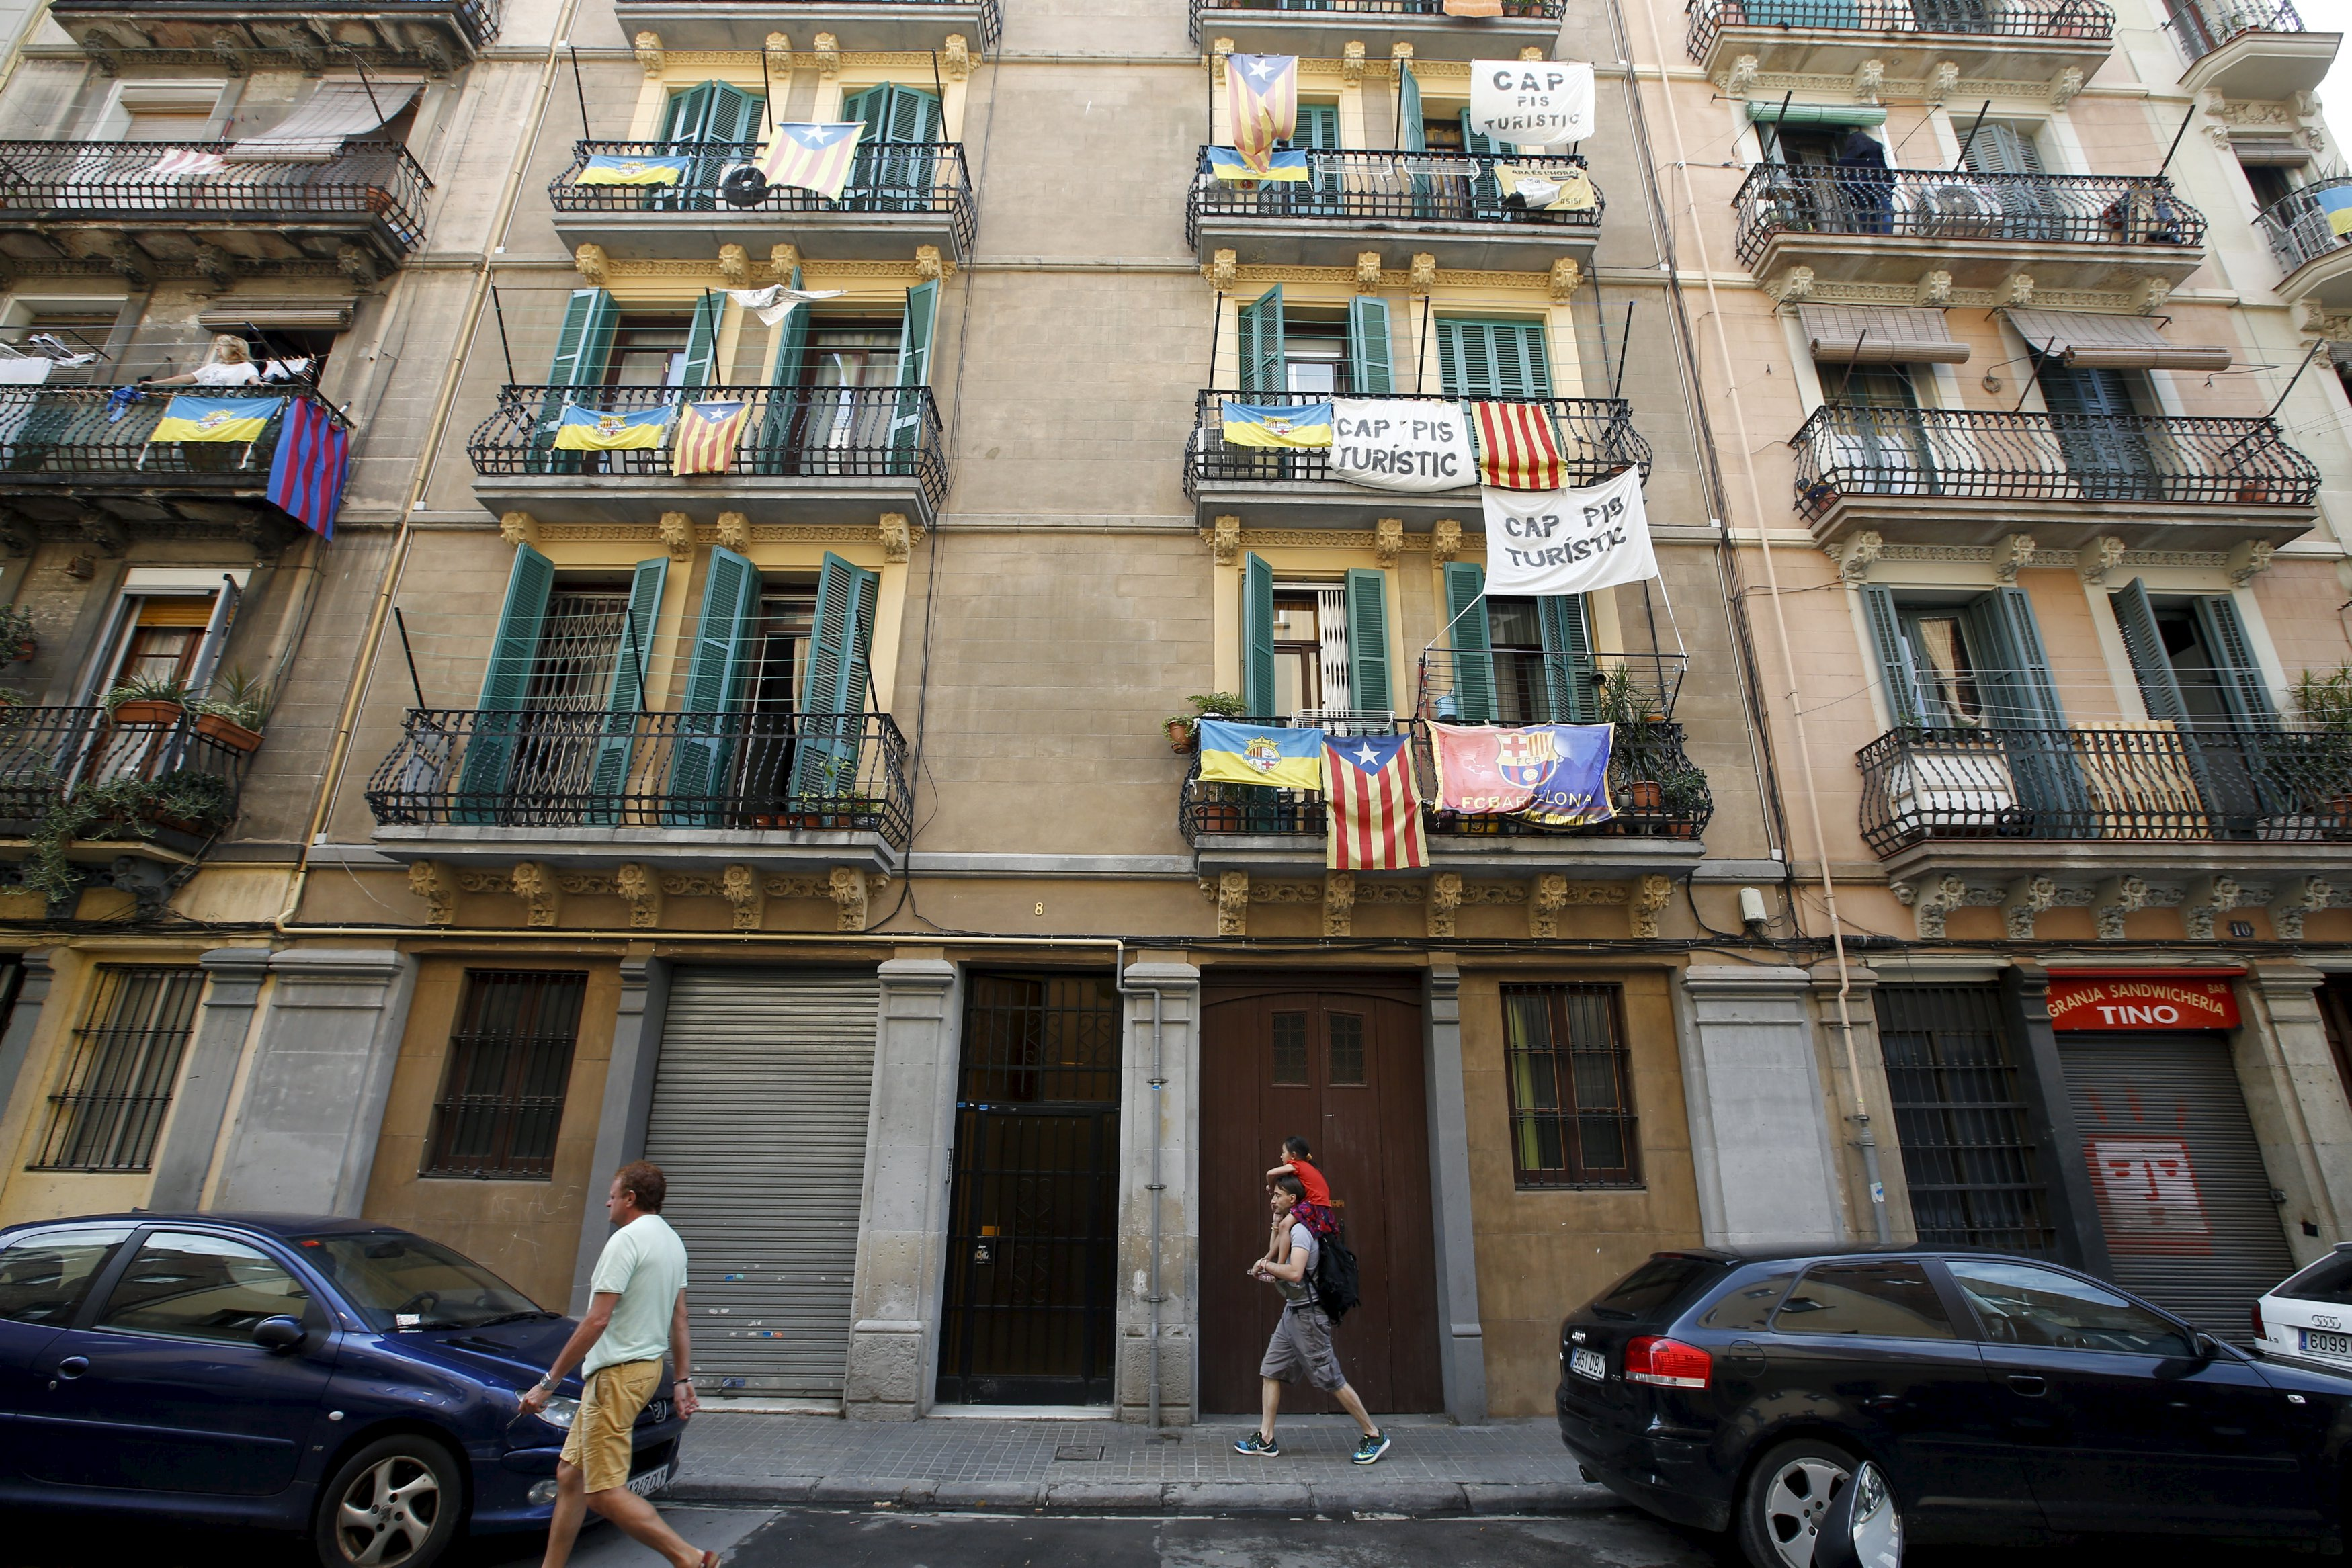 Banners against touristic apartments hang from balconies as people walk past them at Barceloneta neighborhood in Barcelona, Spain, August 18, 2015.  REUTERS/Albert Gea